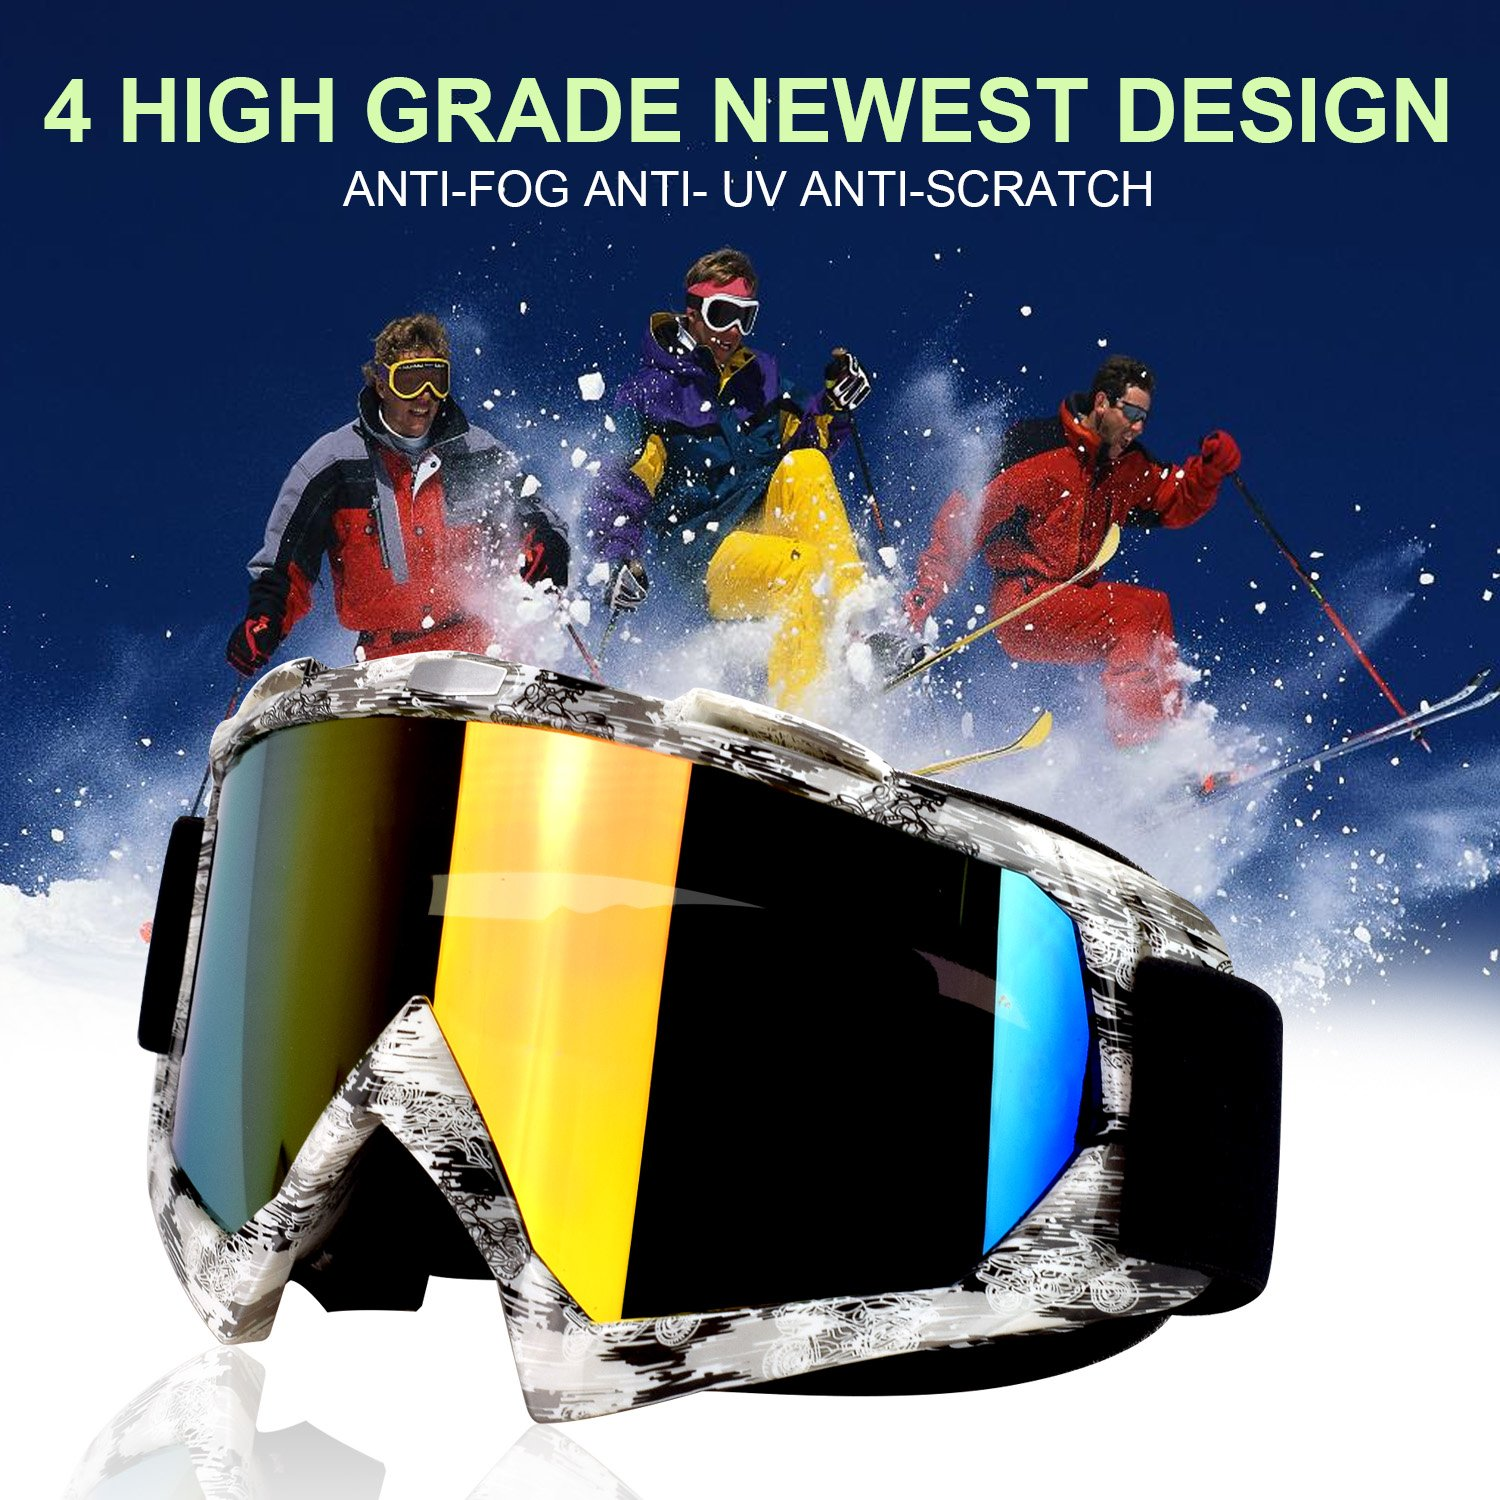 57168d696e79 Amazon.com  Carperipher Ski Goggles Snowboard Goggles Motorcycle Goggles  UV400 Protection Motorbike Motocross Dirt Bike Cycling ATV Racing Safety  Goggles  ...